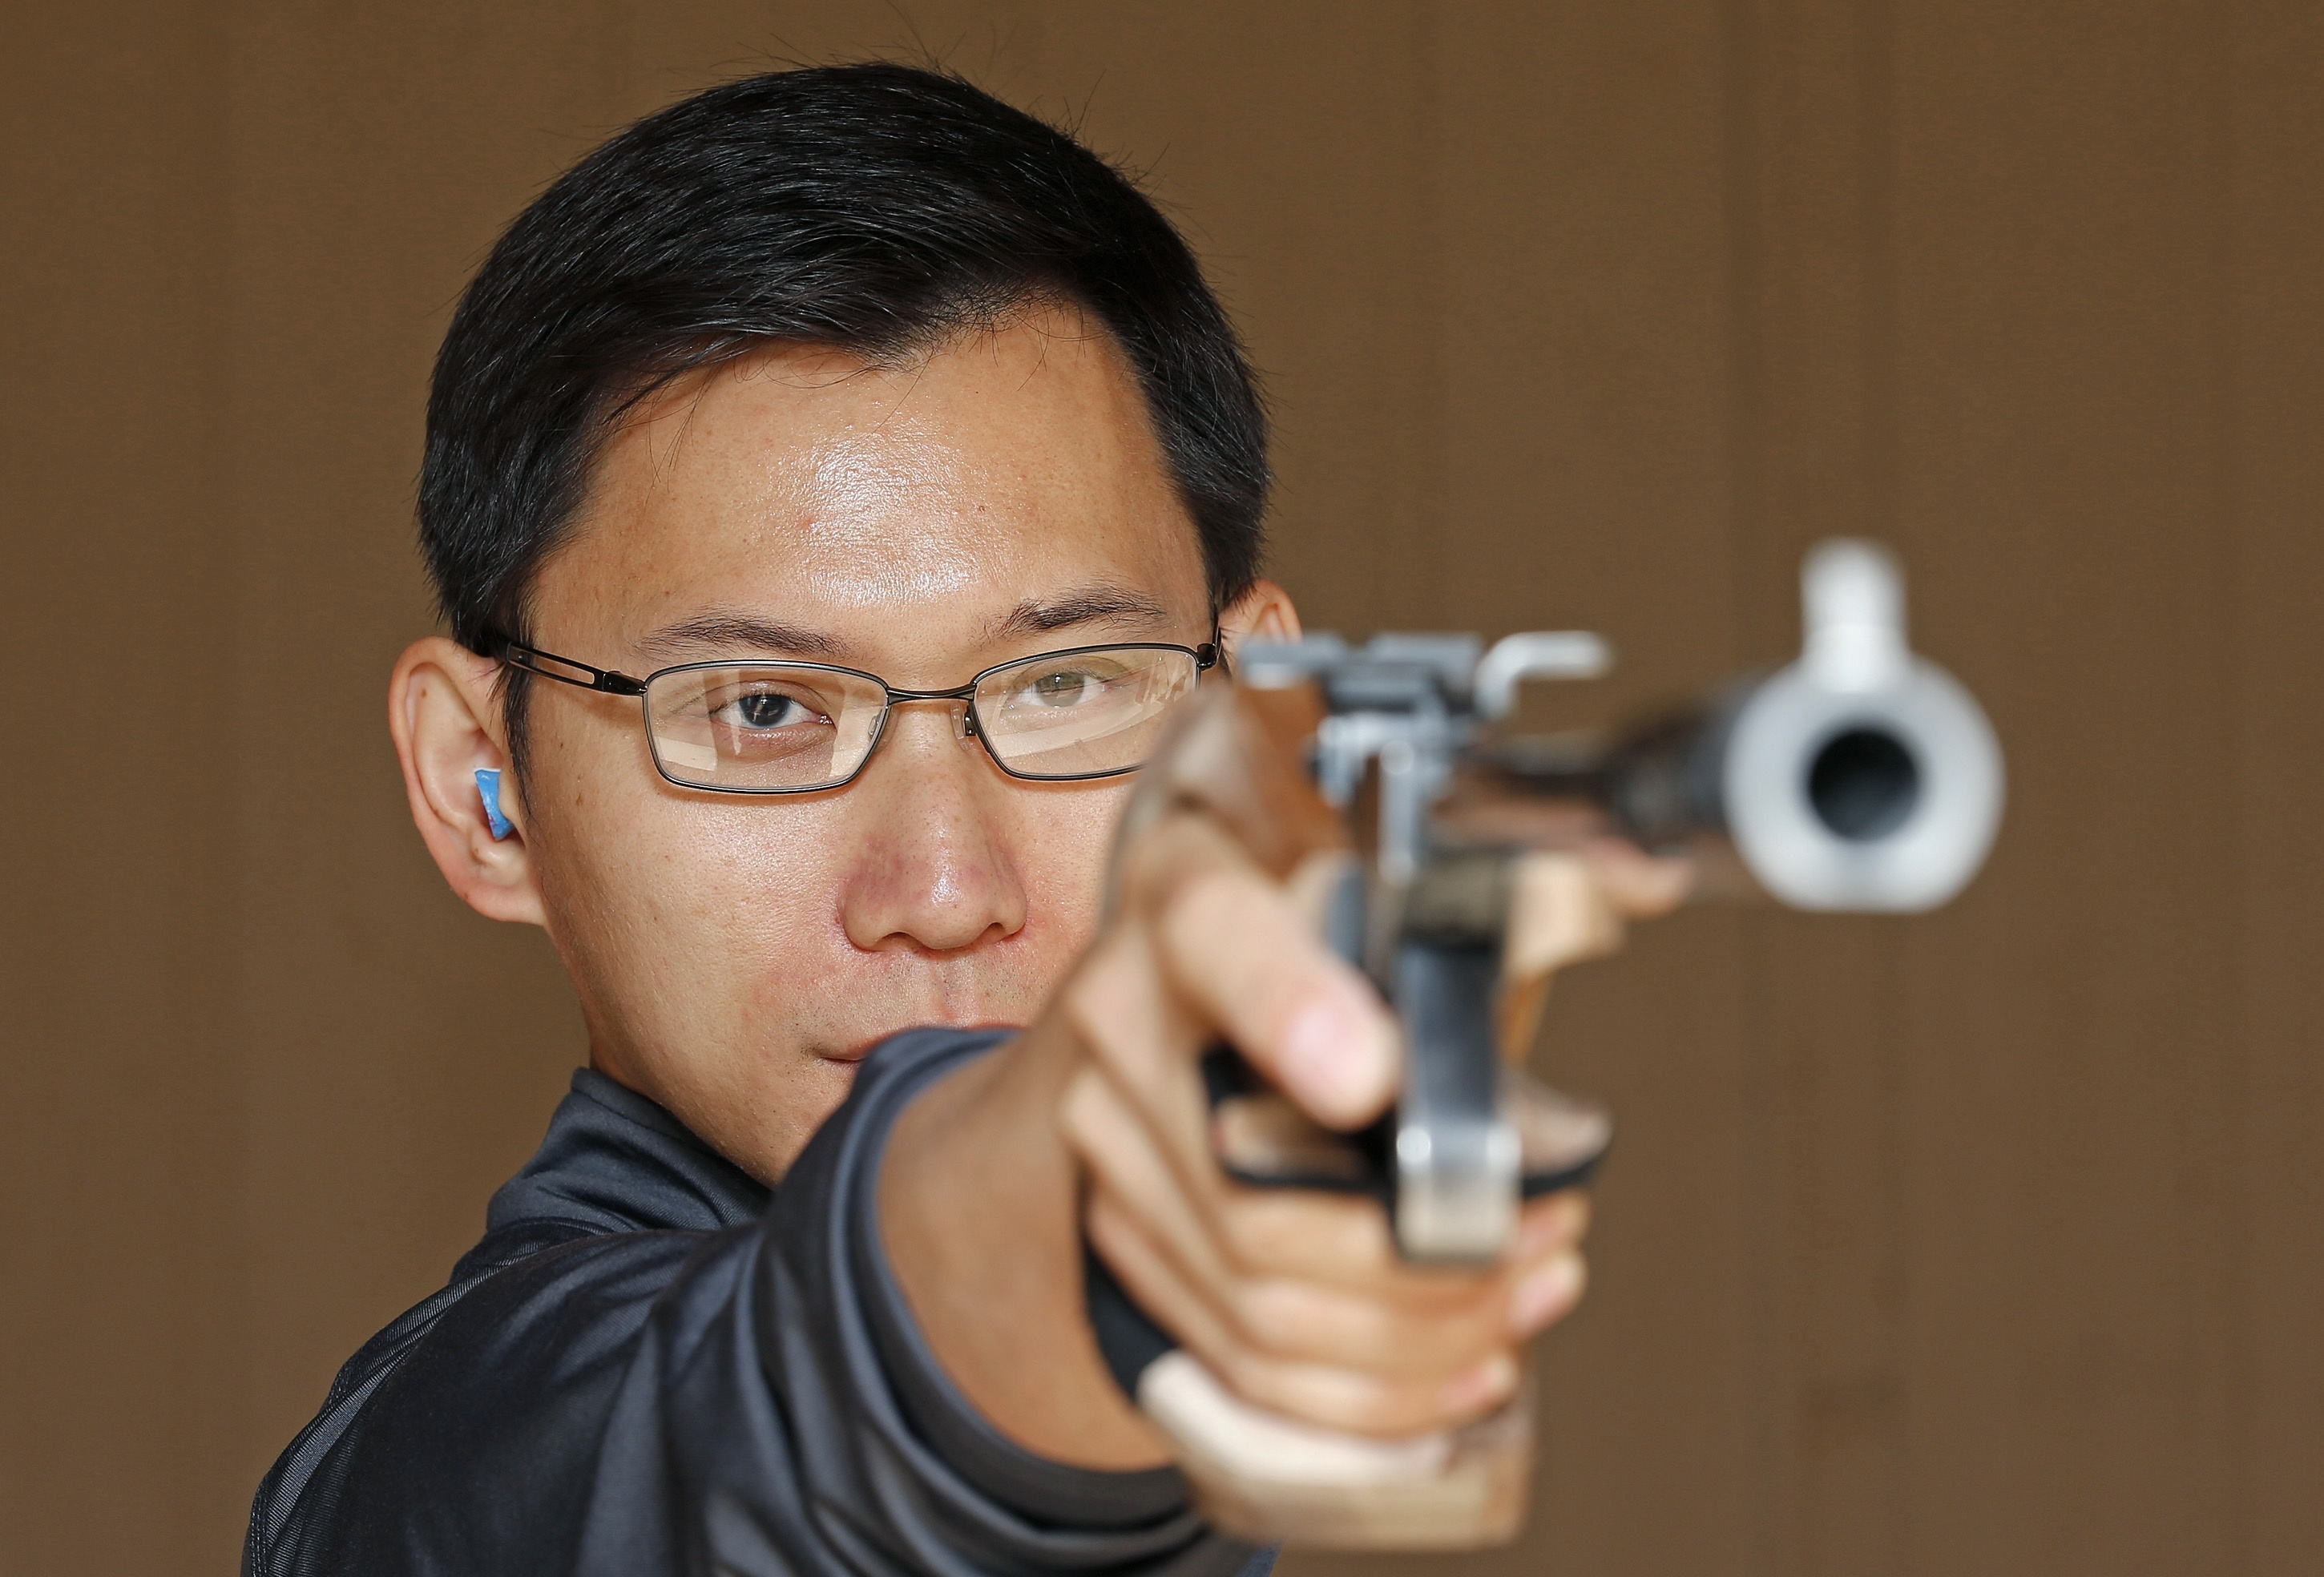 In this photo taken, Saturday, May 7, 2016, Jay Shi, an Olympics qualifier for the 2016 Rio Olympics in free pistol and air pistol, practices at a local shooting range in Phoenix. Shi has overcome damaged to his right eye to qualify for U.S. Olympic Team.